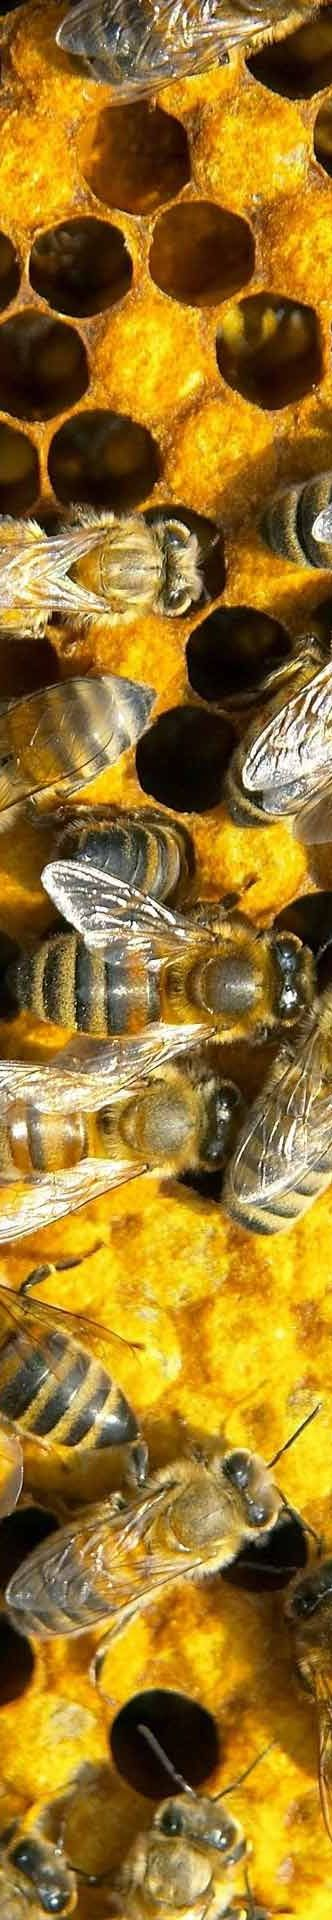 Queremos abejas! #Bees please!